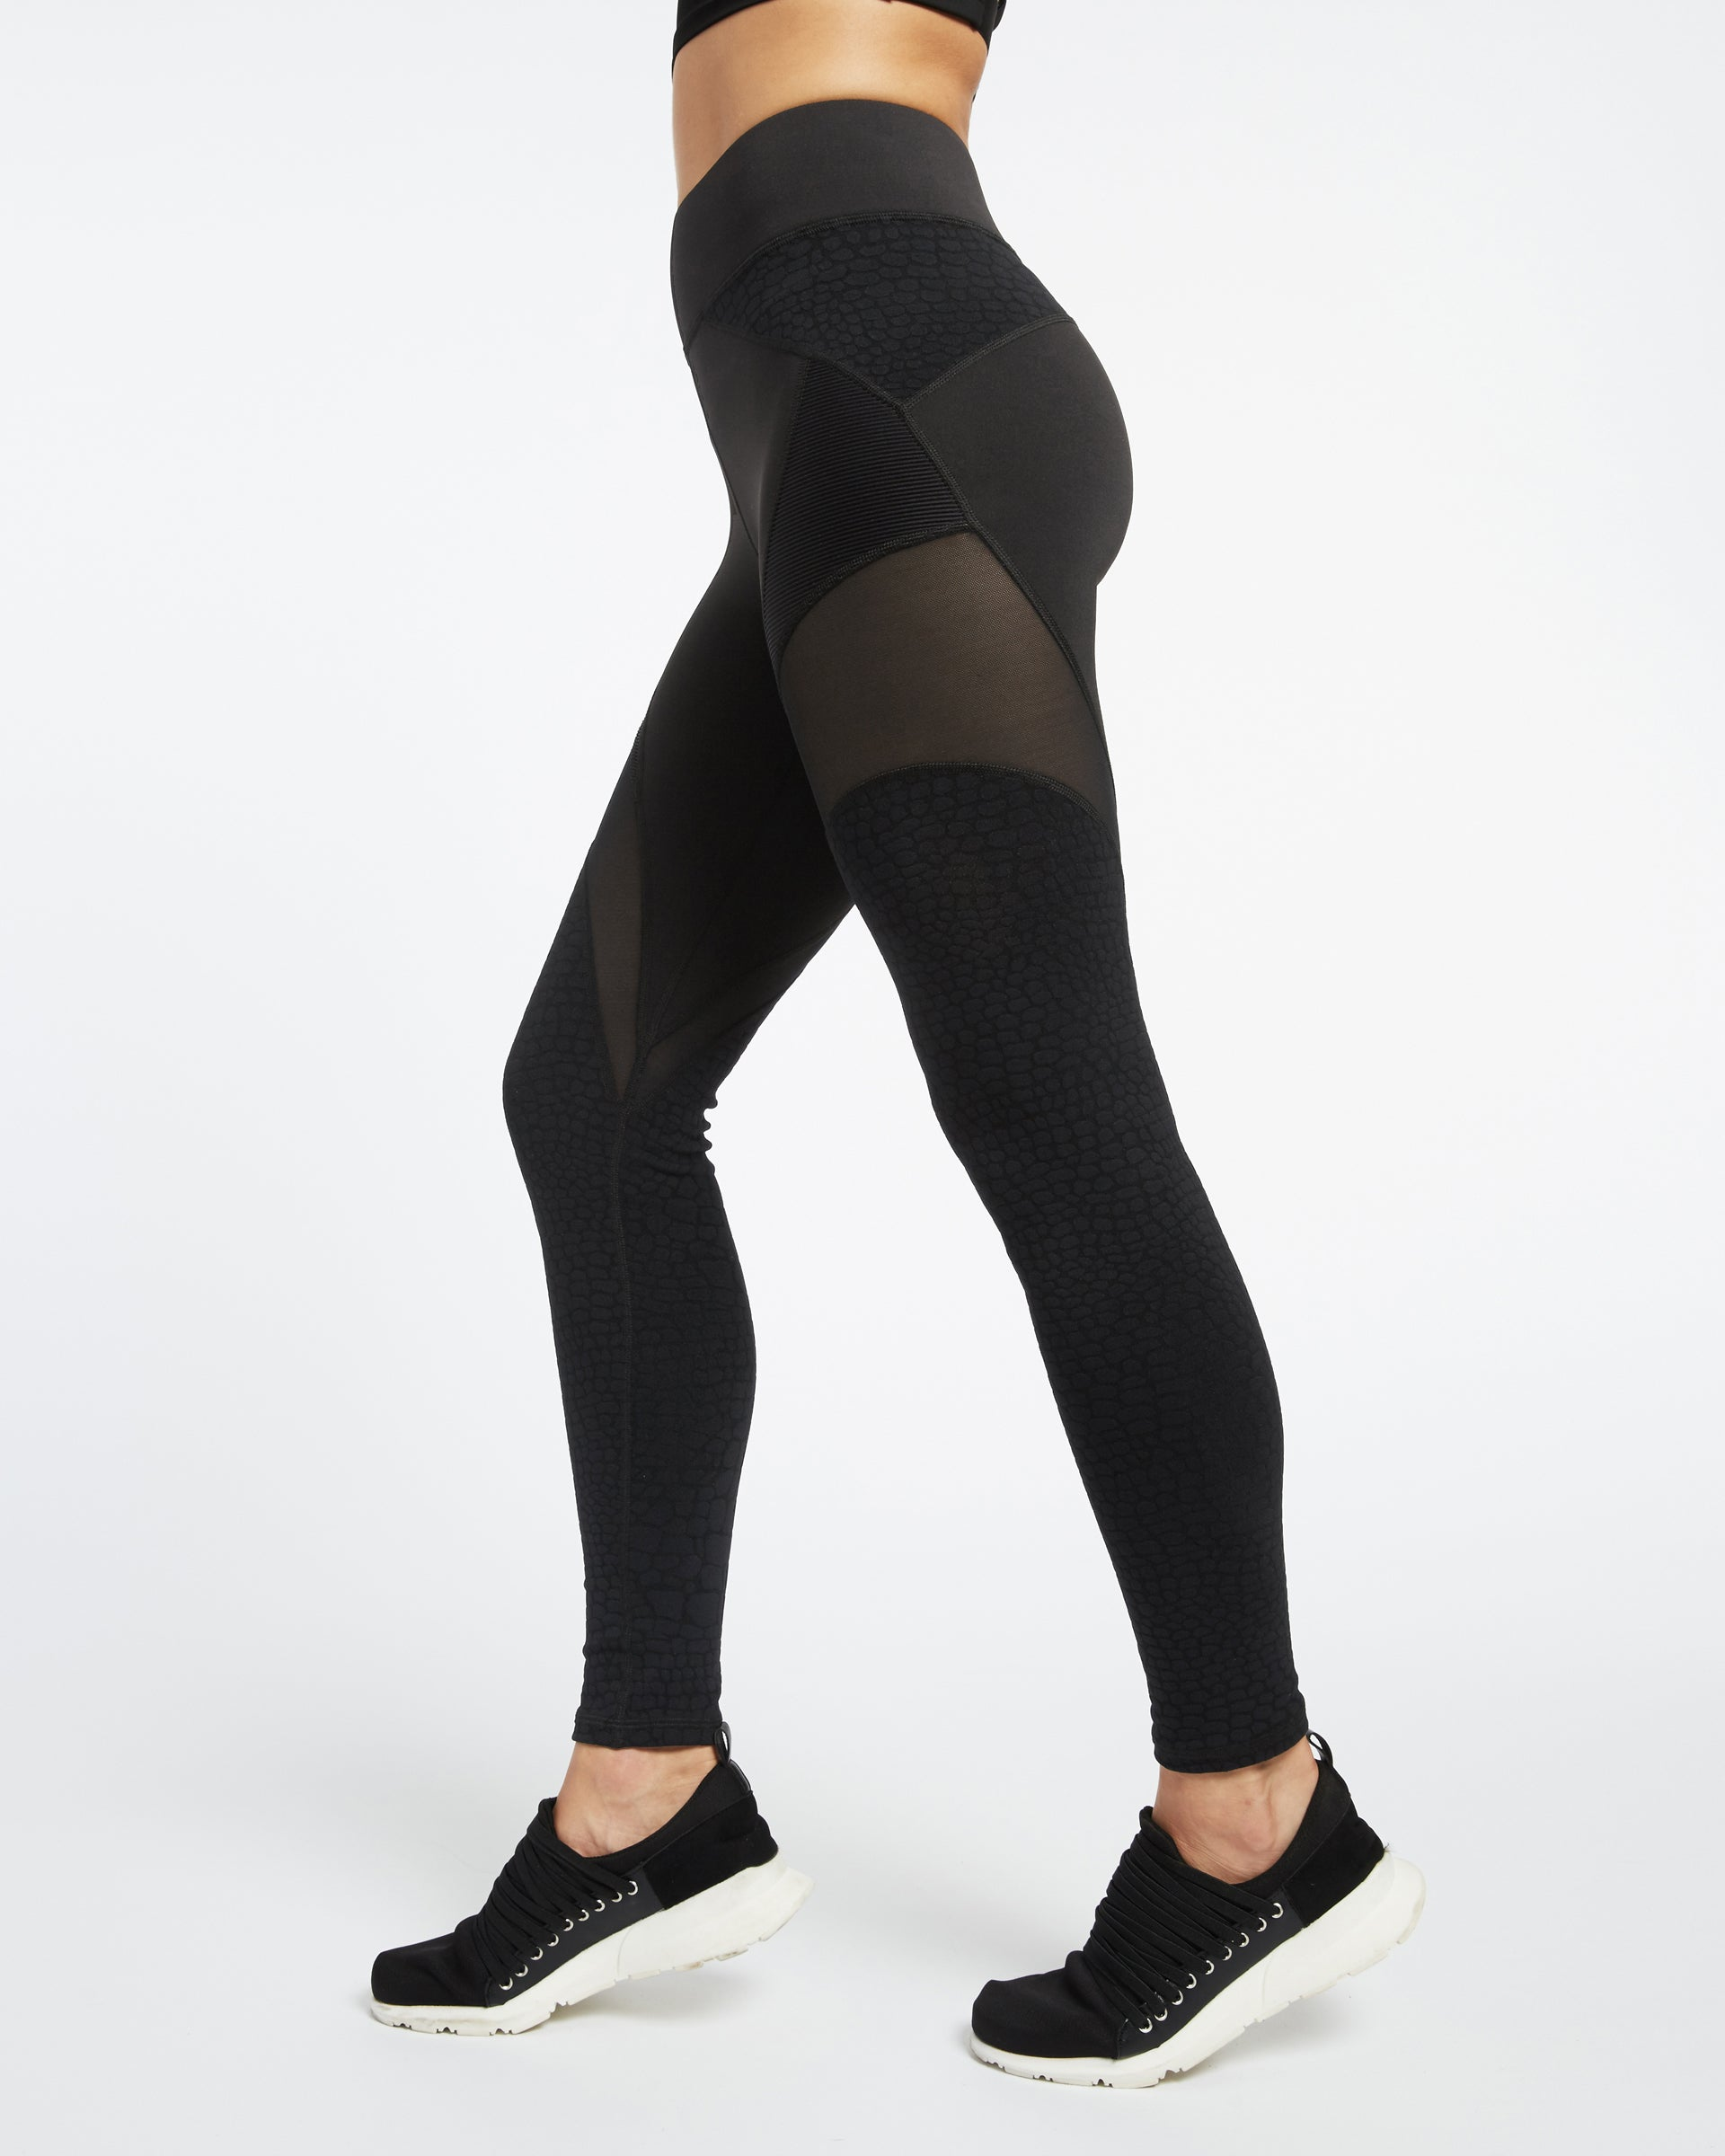 Mirage Legging - Black Croc / Black